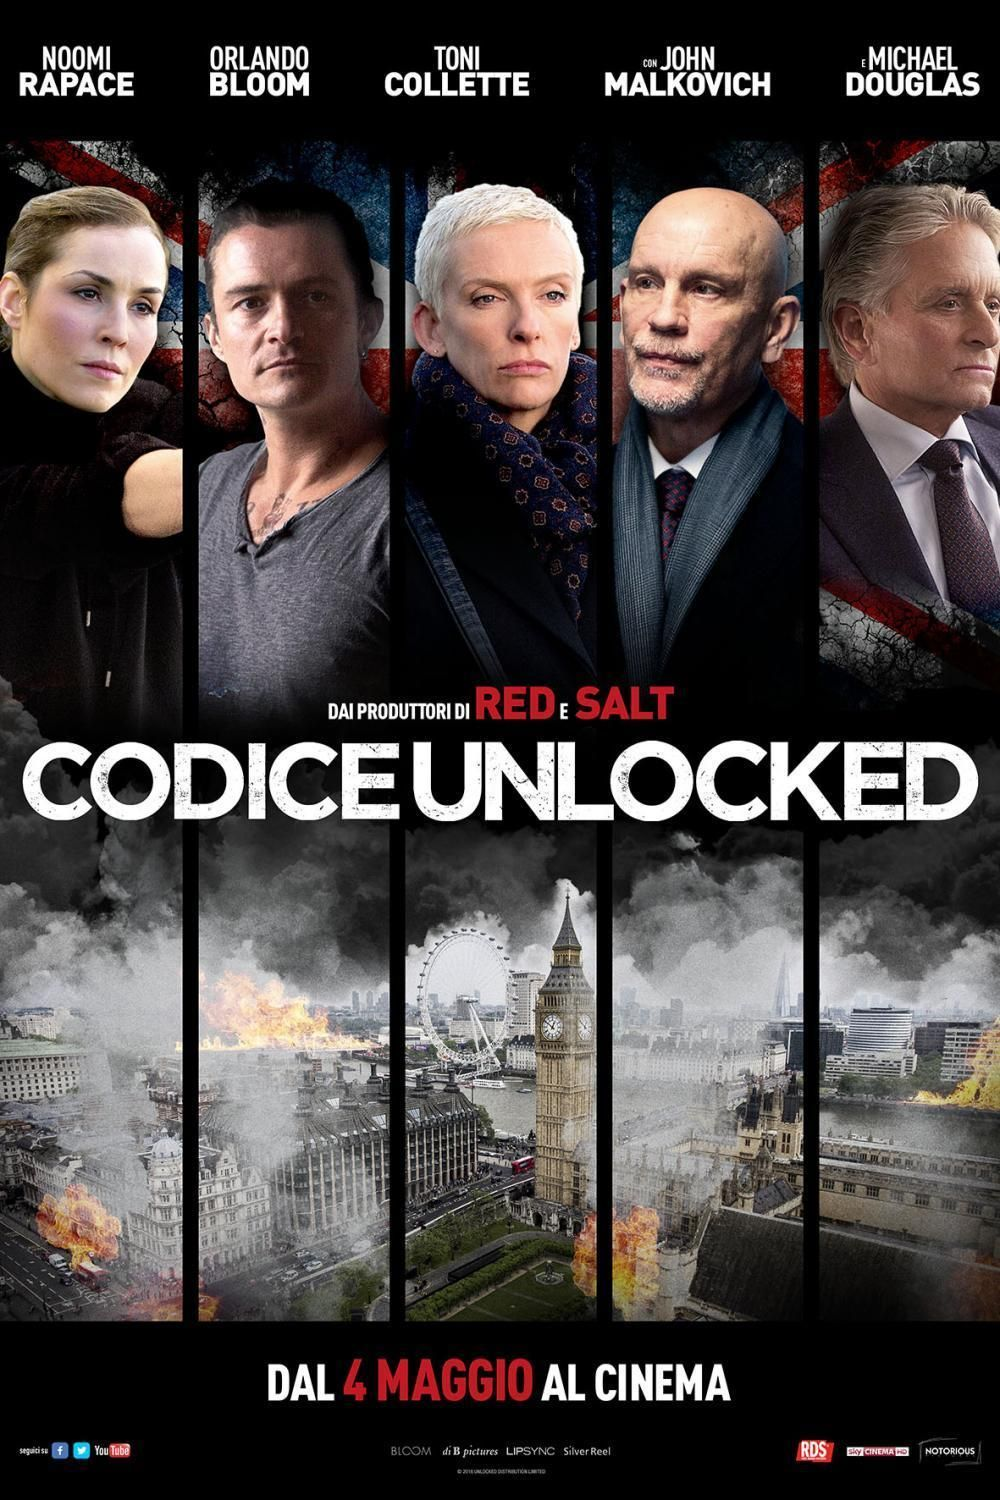 Codice Unlocked Streaming Film E Serie Tv In Altadefinizione Hd Streaming Movies Free Streaming Movies Online Free Films Online